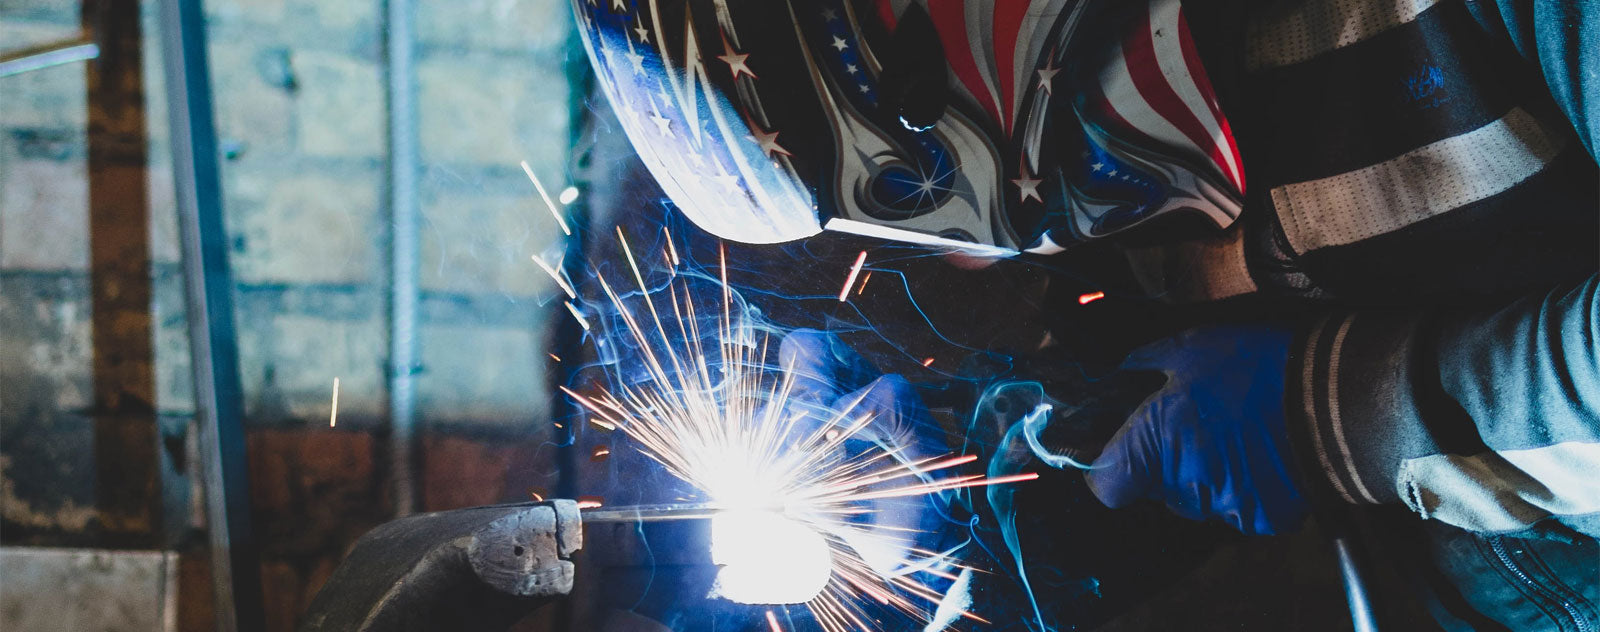 The Welding Protective Gear